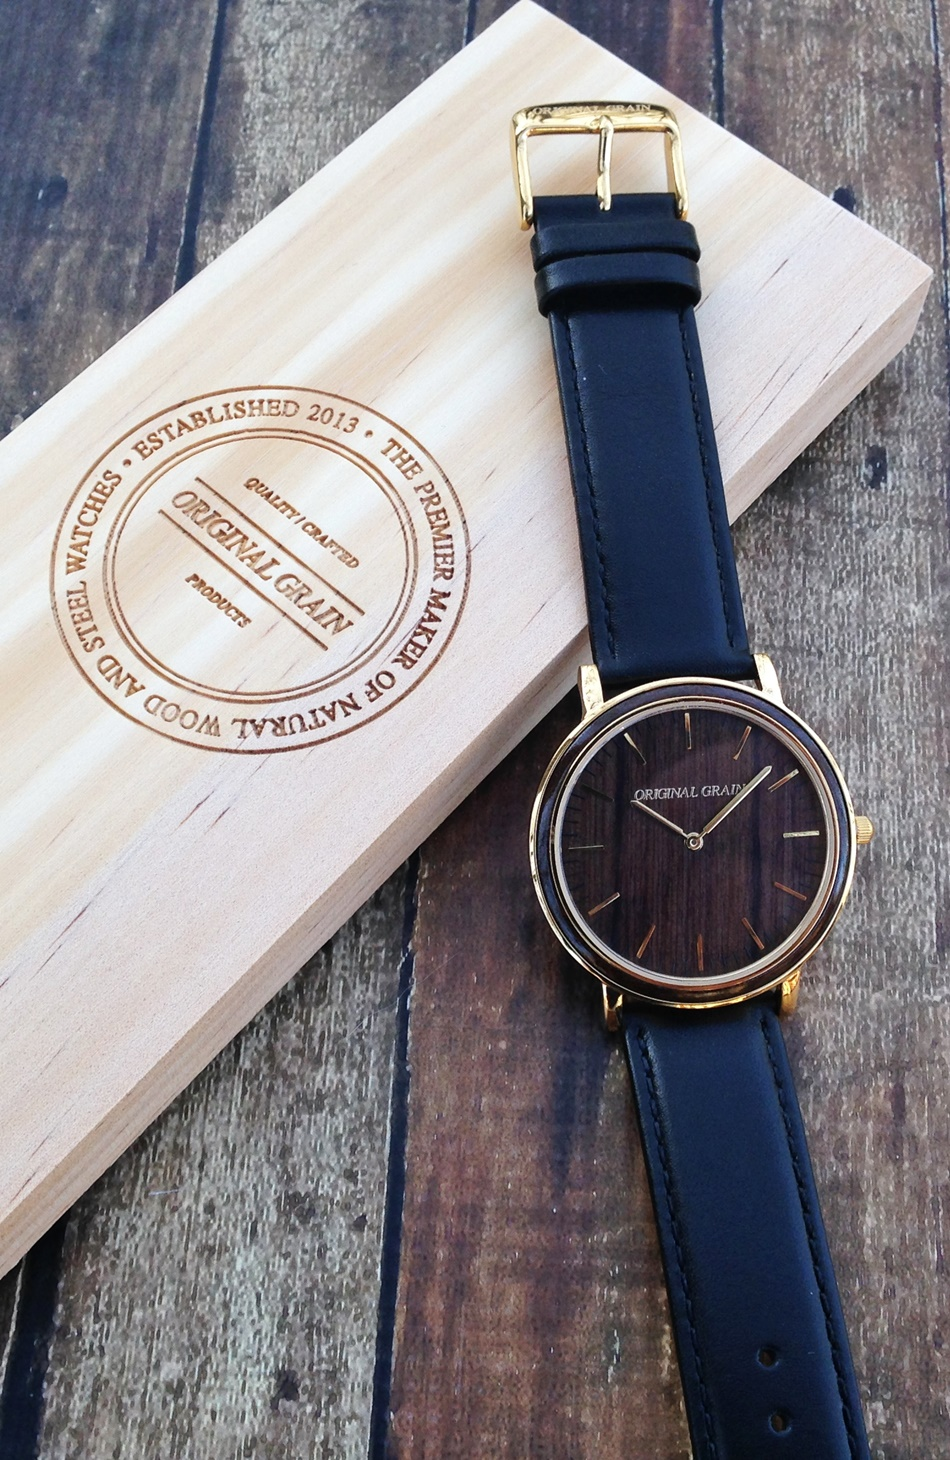 Original Grain Minimalist Watch